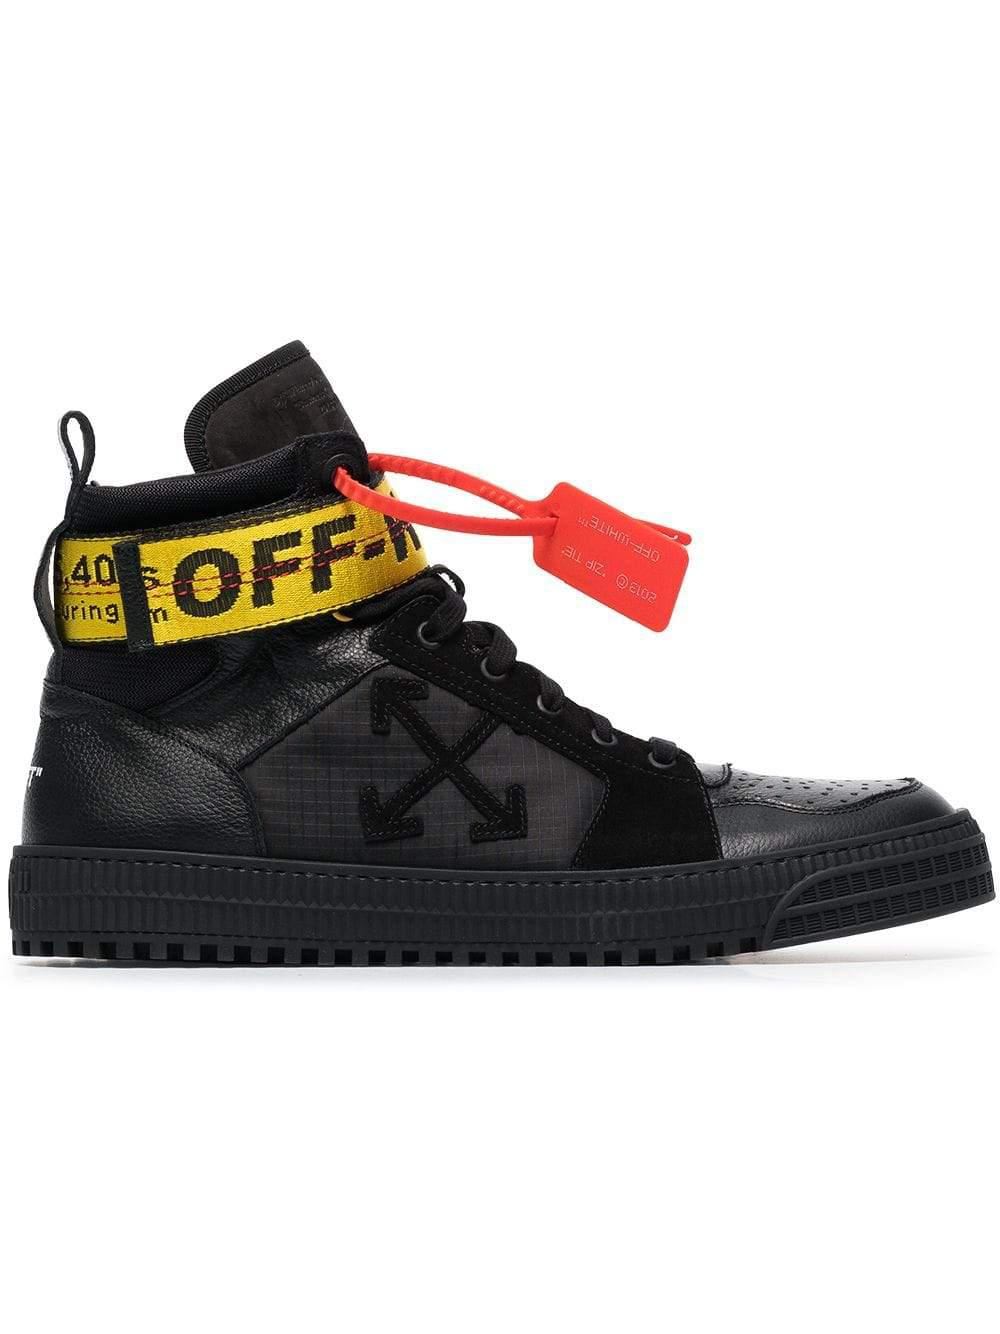 30466a397ea68 Lyst - Off-White c o Virgil Abloh Black Suede And Leather Hi-top ...